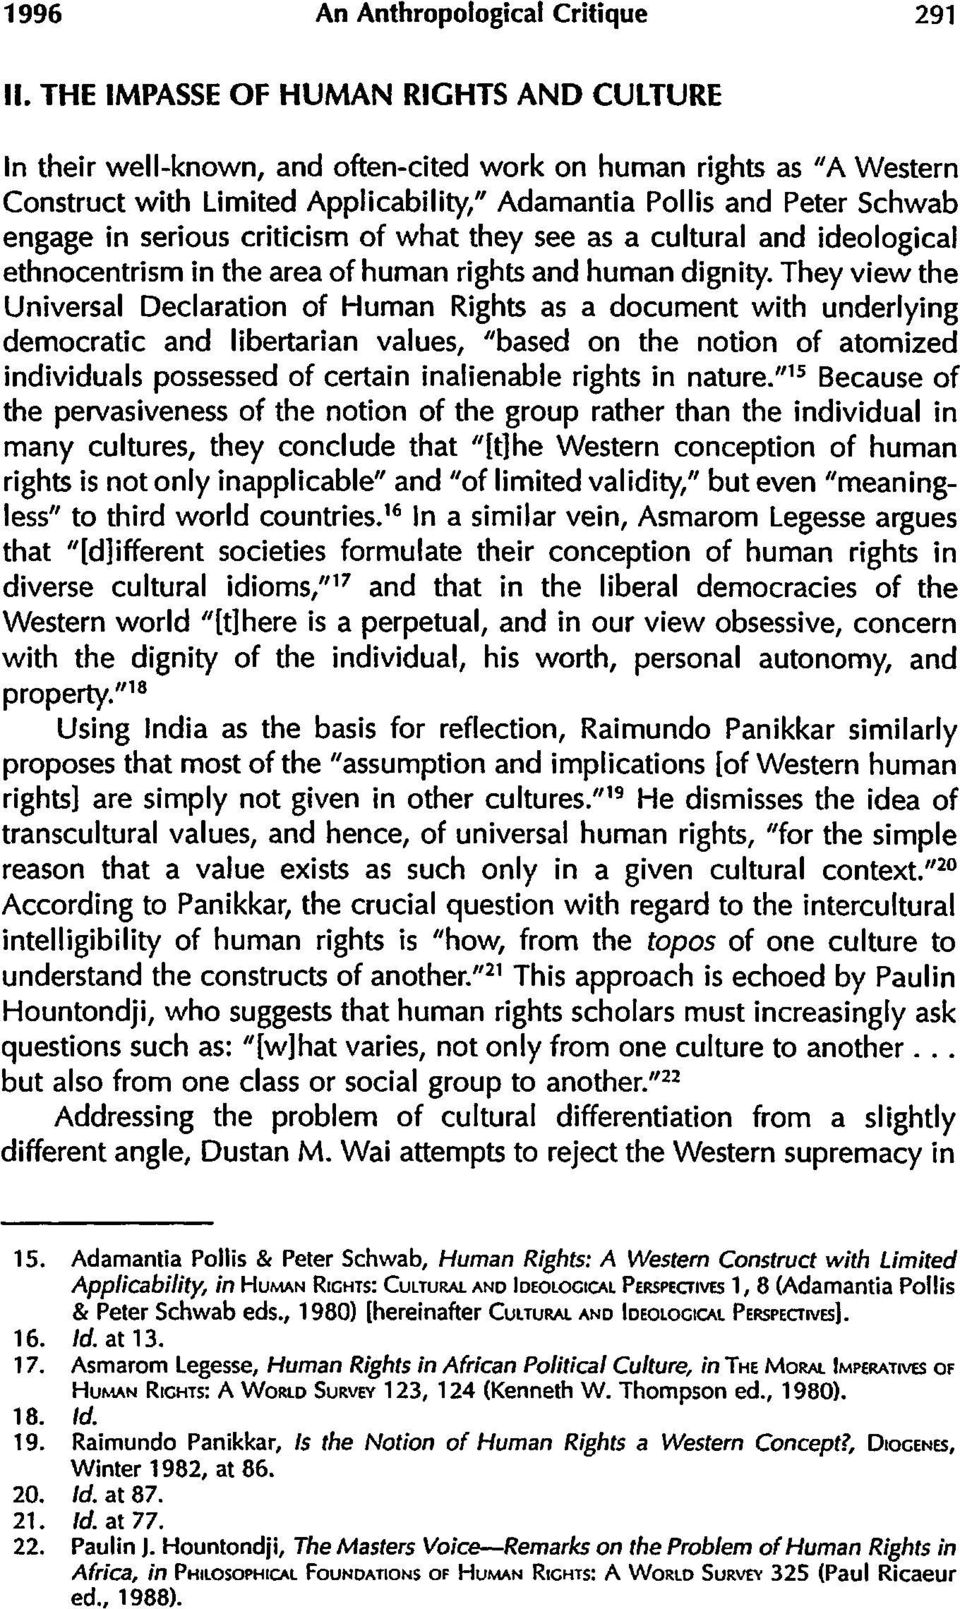 serious criticism of what they see as a cultural and ideological ethnocentrism in the area of human rights and human dignity.